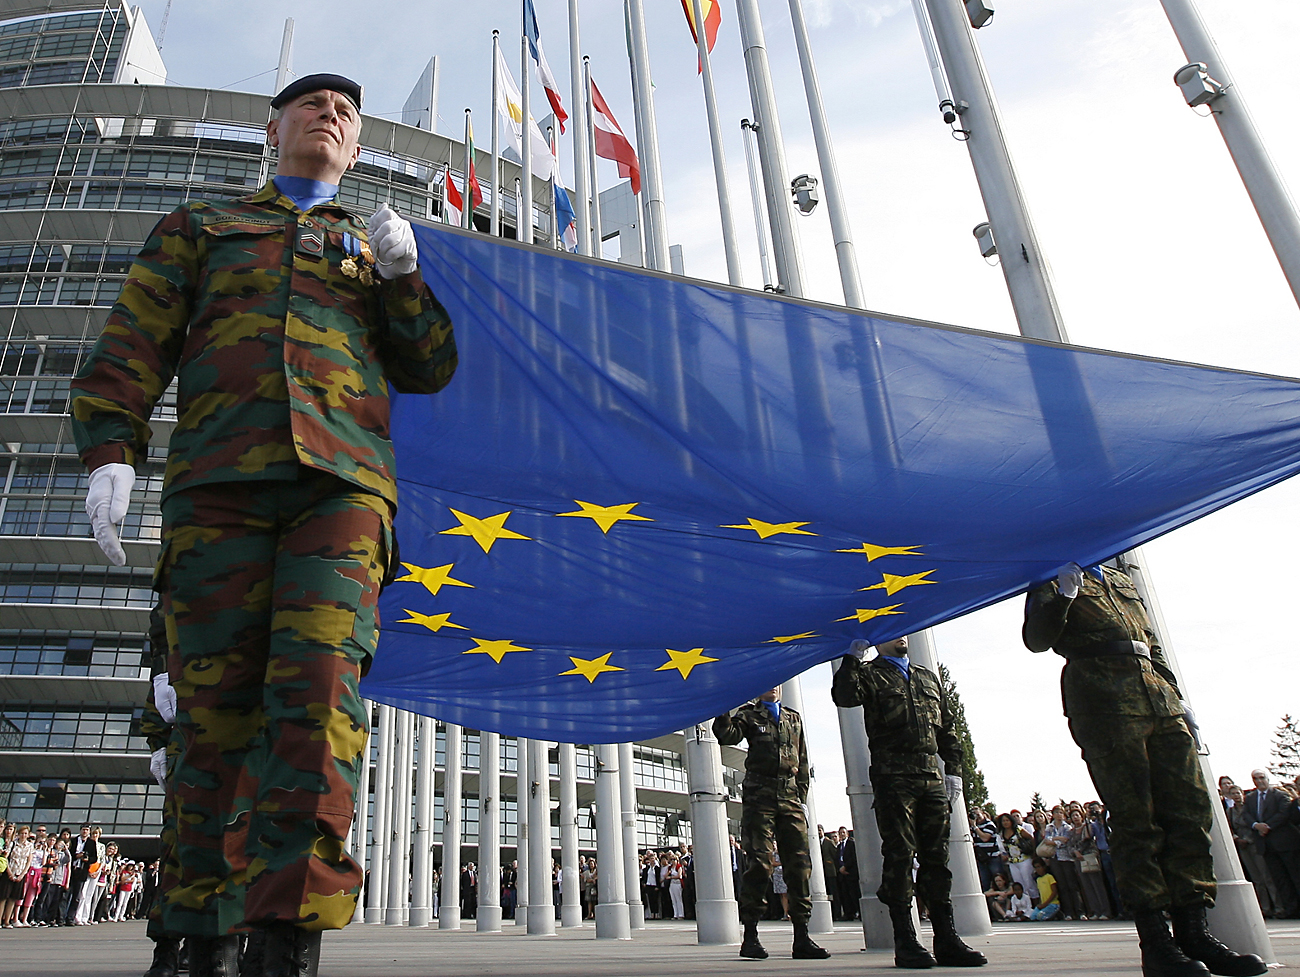 Soldiers of the Eurocorps carry the European flag in front the European Parliament during a ceremony to mark the 25th anniversary of the adoption of the European flag in Strasbourg, May 9, 2011.